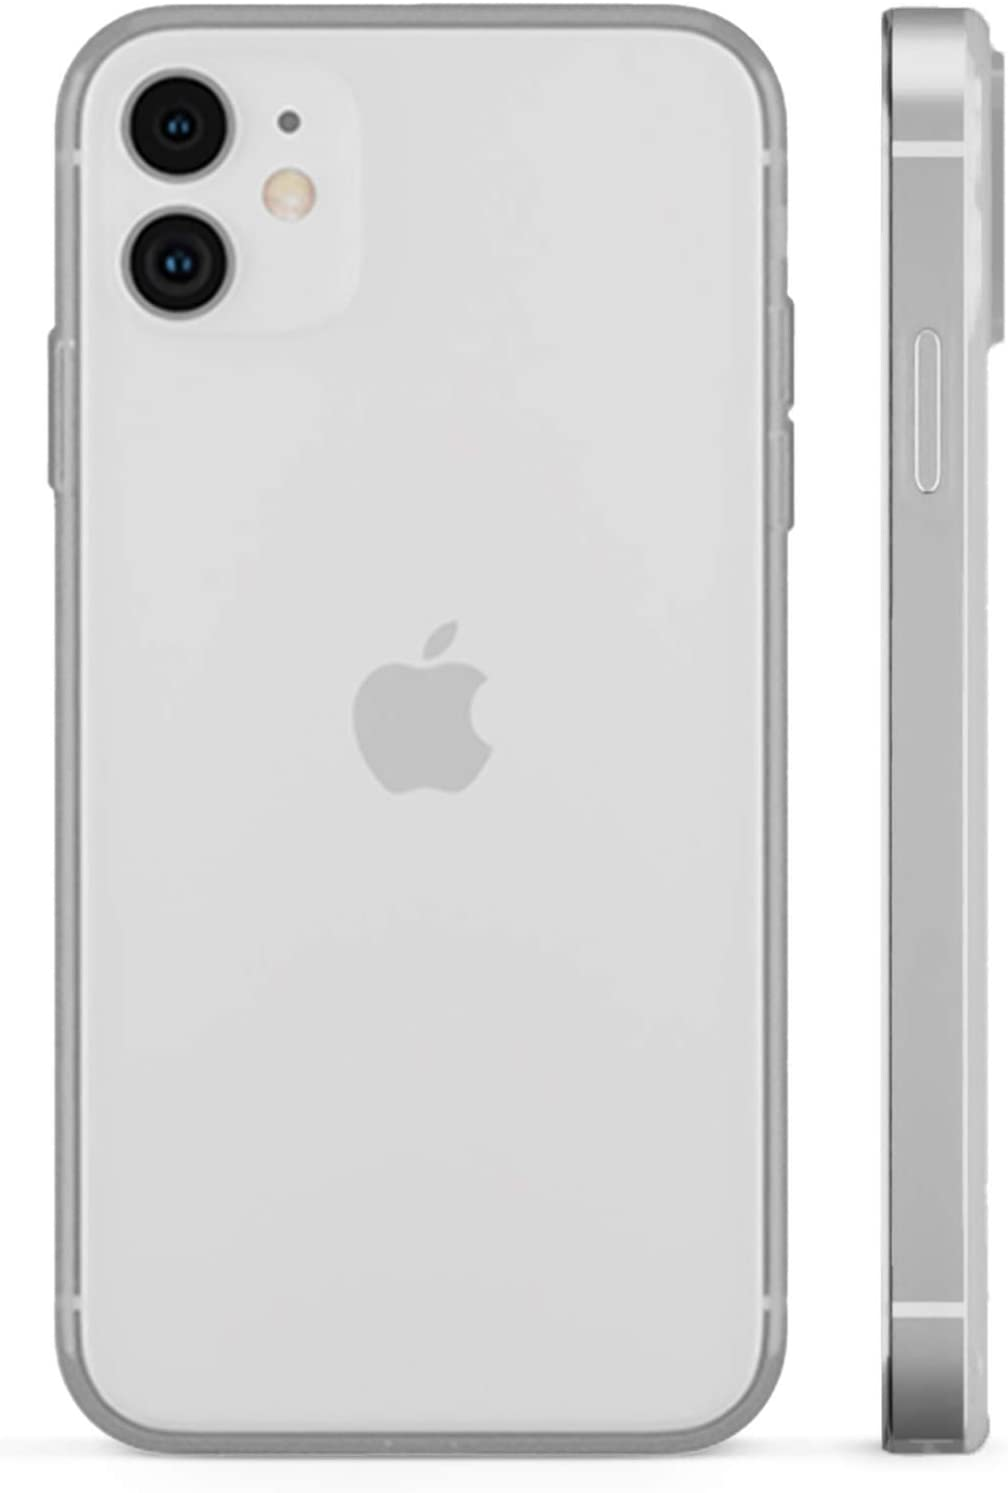 PEEL Ultra Thin iPhone 12 Mini Case, Clear Soft - Minimalist Design   Branding Free   Protects and Showcases Your Apple iPhone 12 Mini